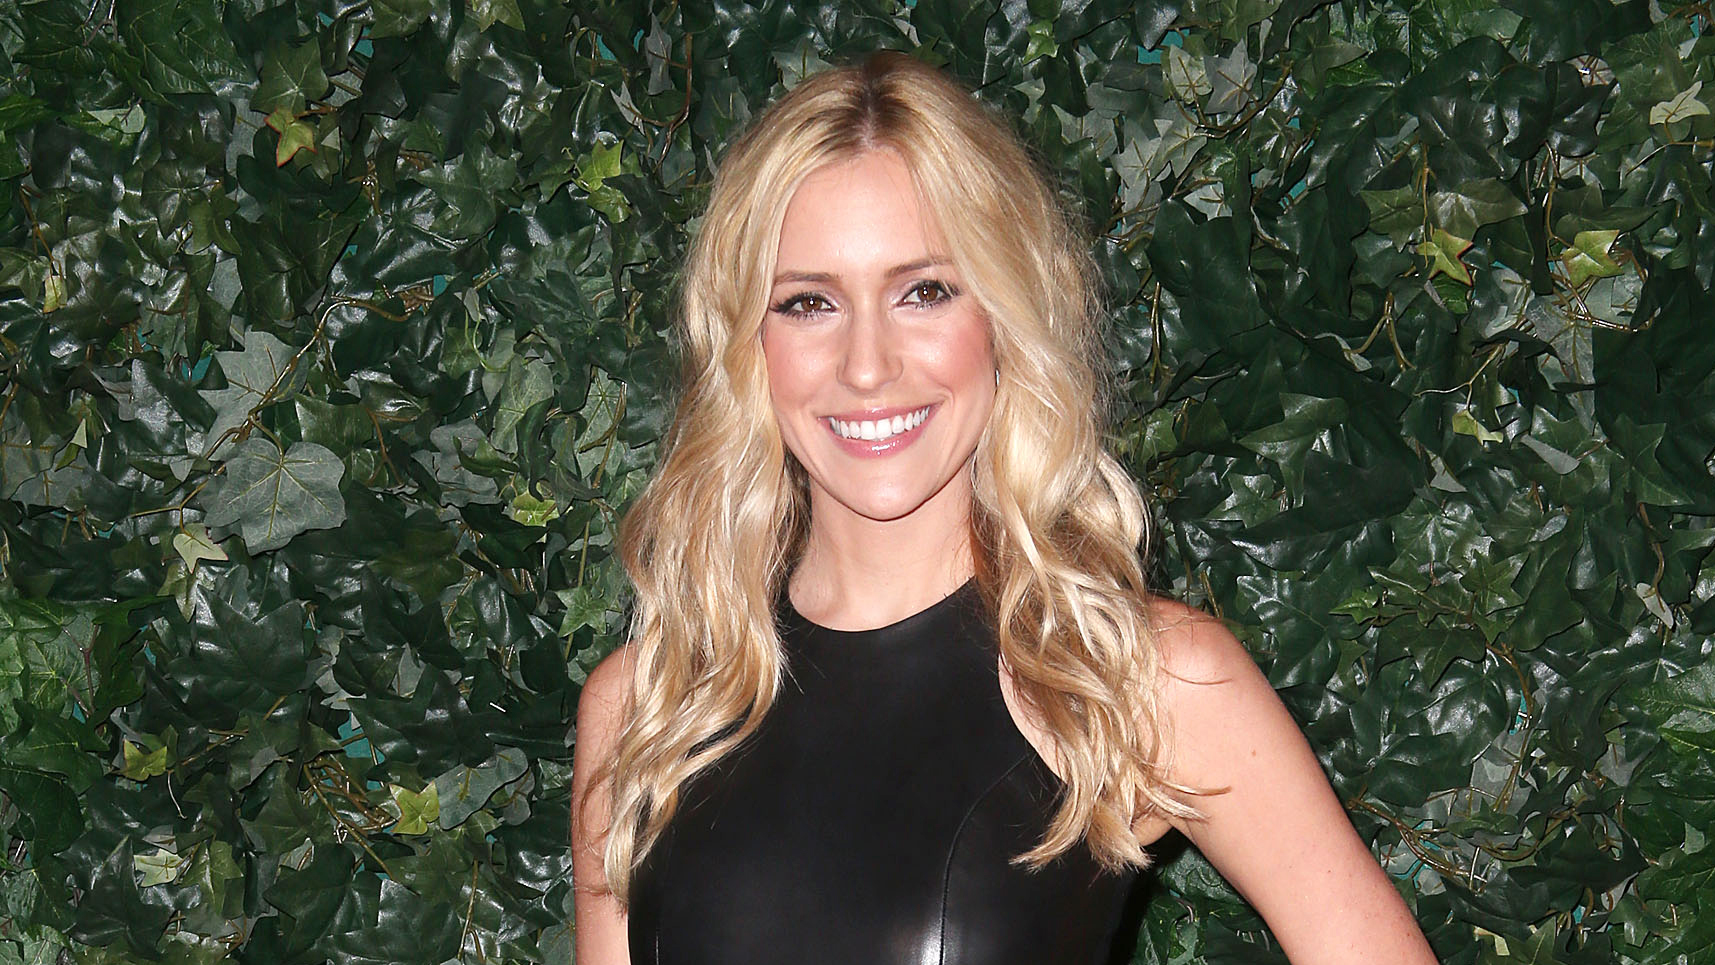 PHOTO: Actress Kristen Cavallari attends the QVC Red Carpet Style Event, at the Four Seasons Hotel Los Angeles on Feb. 22, 2013 in Beverly Hills, Calif.